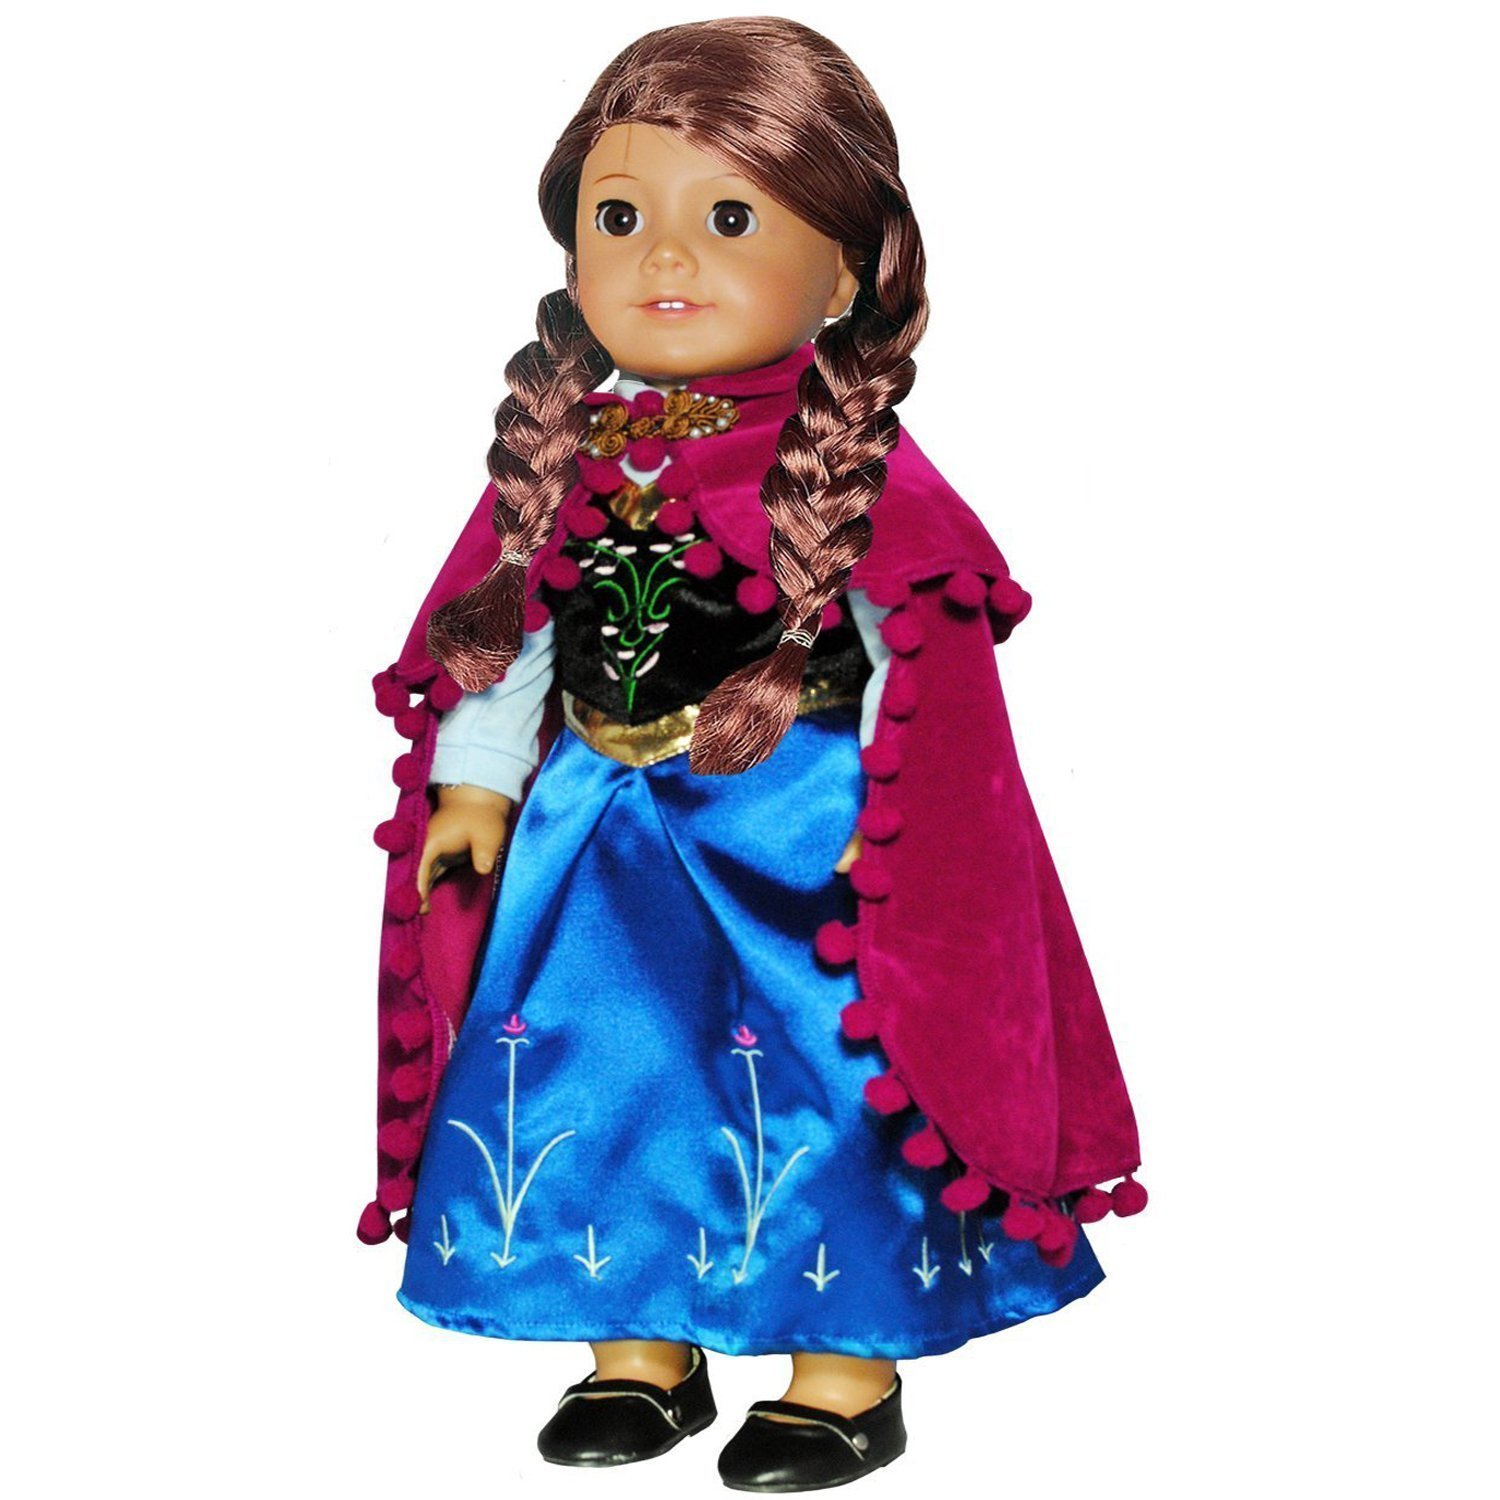 "Doll Clothes Princess Anna Dress Outfit Fits American Girl & Other 18"" Dolls"